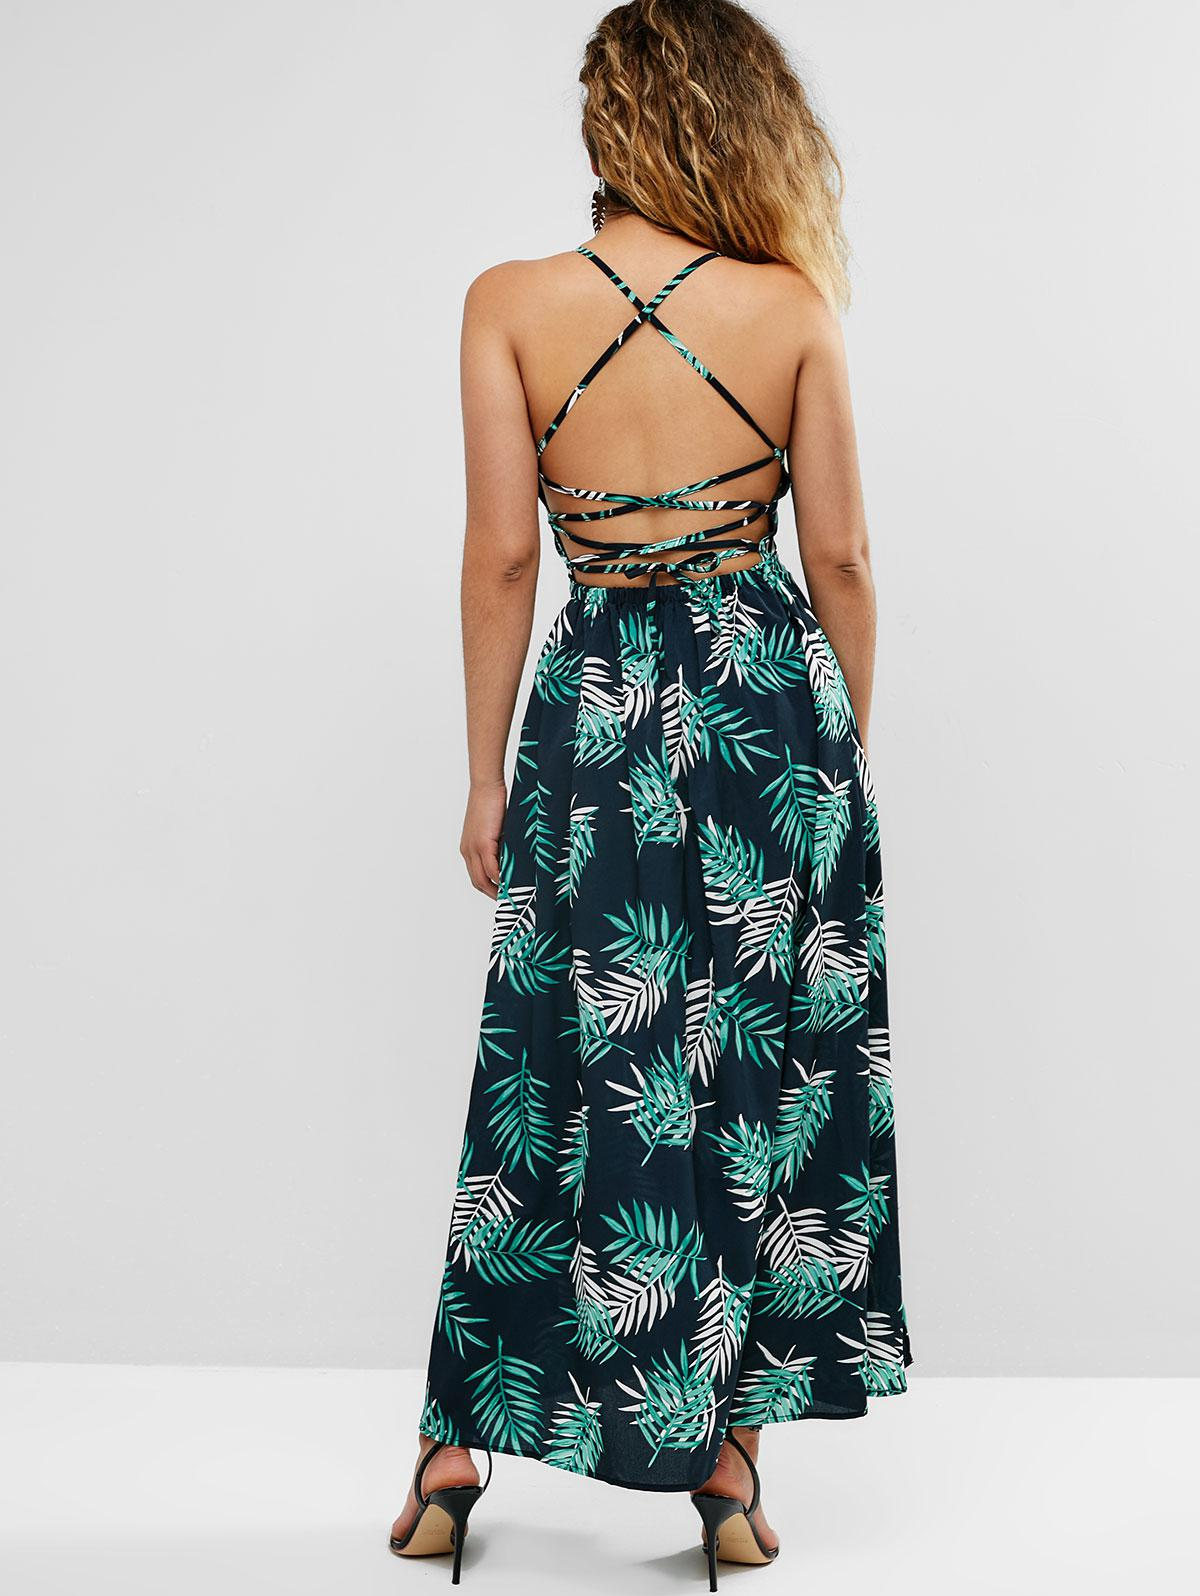 Criss Cross Leaf Print Slit Beach Dress thumbnail